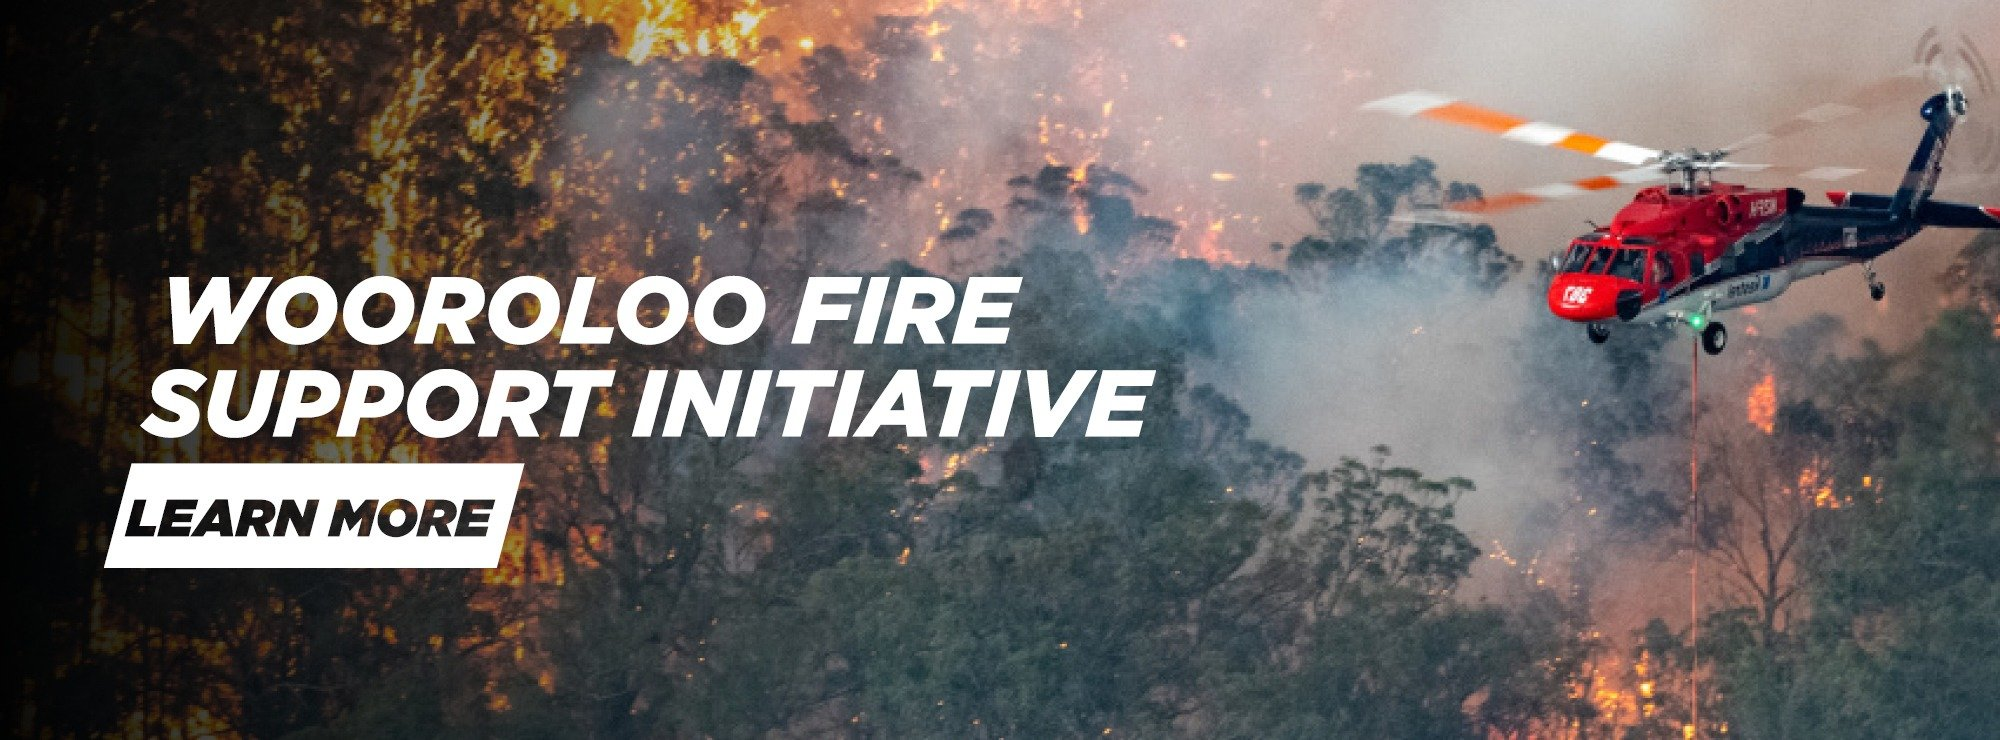 Wooroloo Fire Support